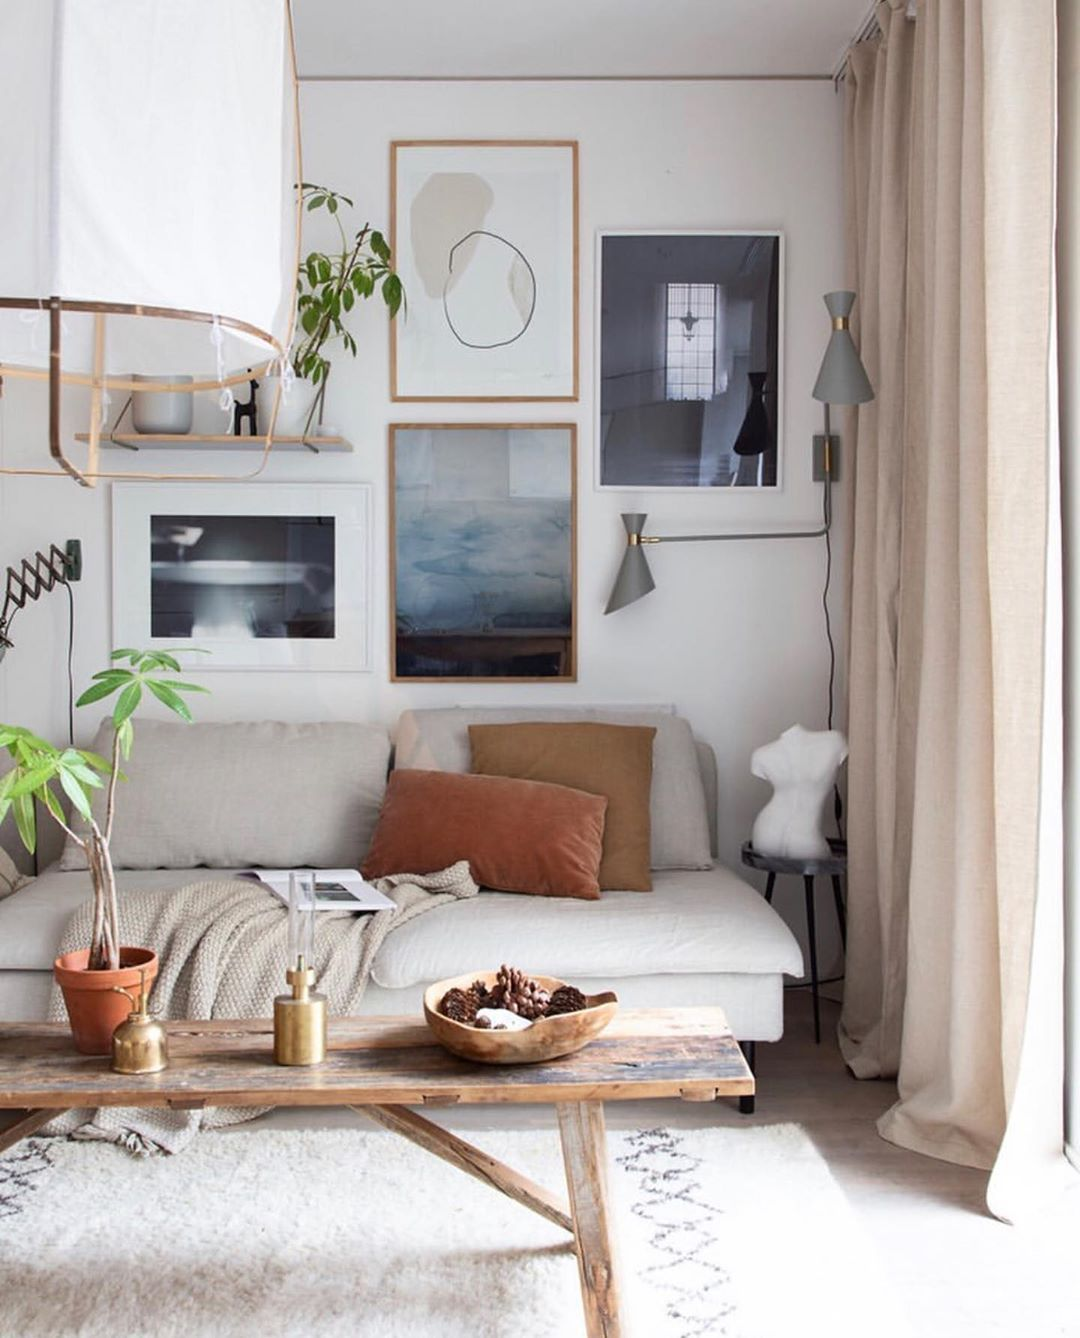 My Scandinavian Home On Instagram Finally On Our Way Home After Four Weeks I Can T Wait To Curl Up In Thi In 2020 My Scandinavian Home Scandinavian Home Home Decor